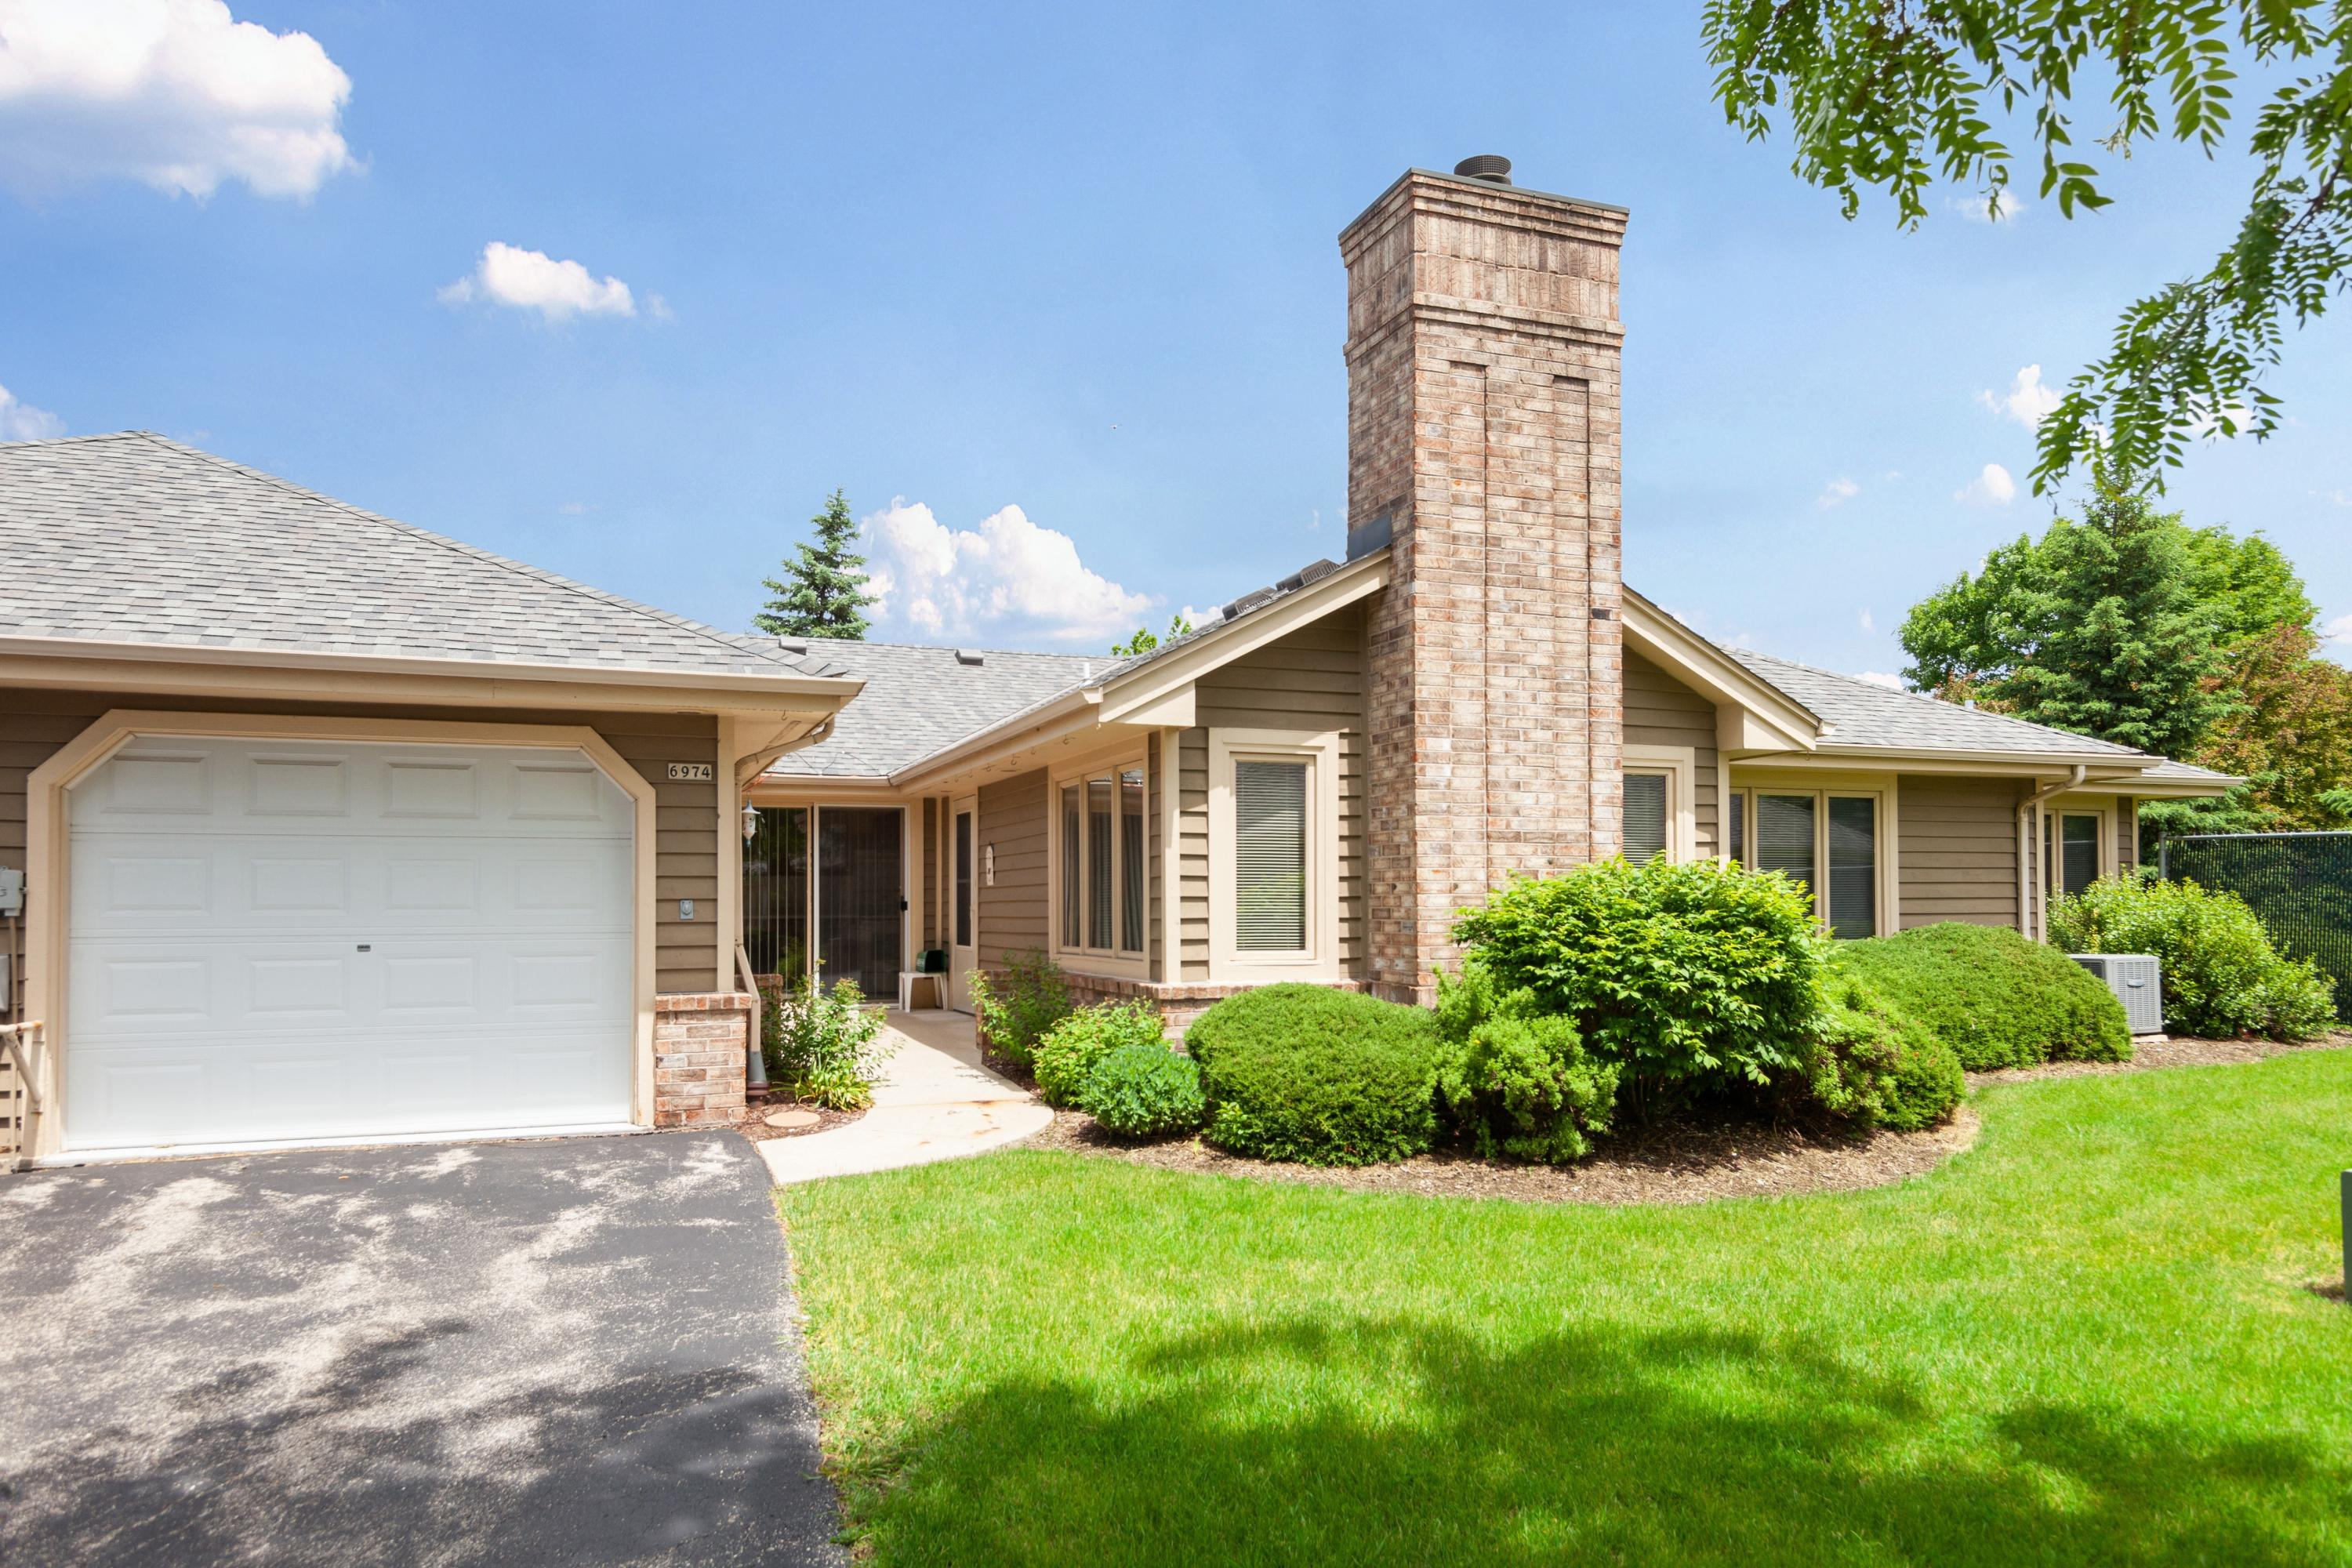 6974 Lincolnshire Cir, Milwaukee, Wisconsin 53223, 2 Bedrooms Bedrooms, 5 Rooms Rooms,2 BathroomsBathrooms,Condominiums,For Sale,Lincolnshire Cir,1,1643354